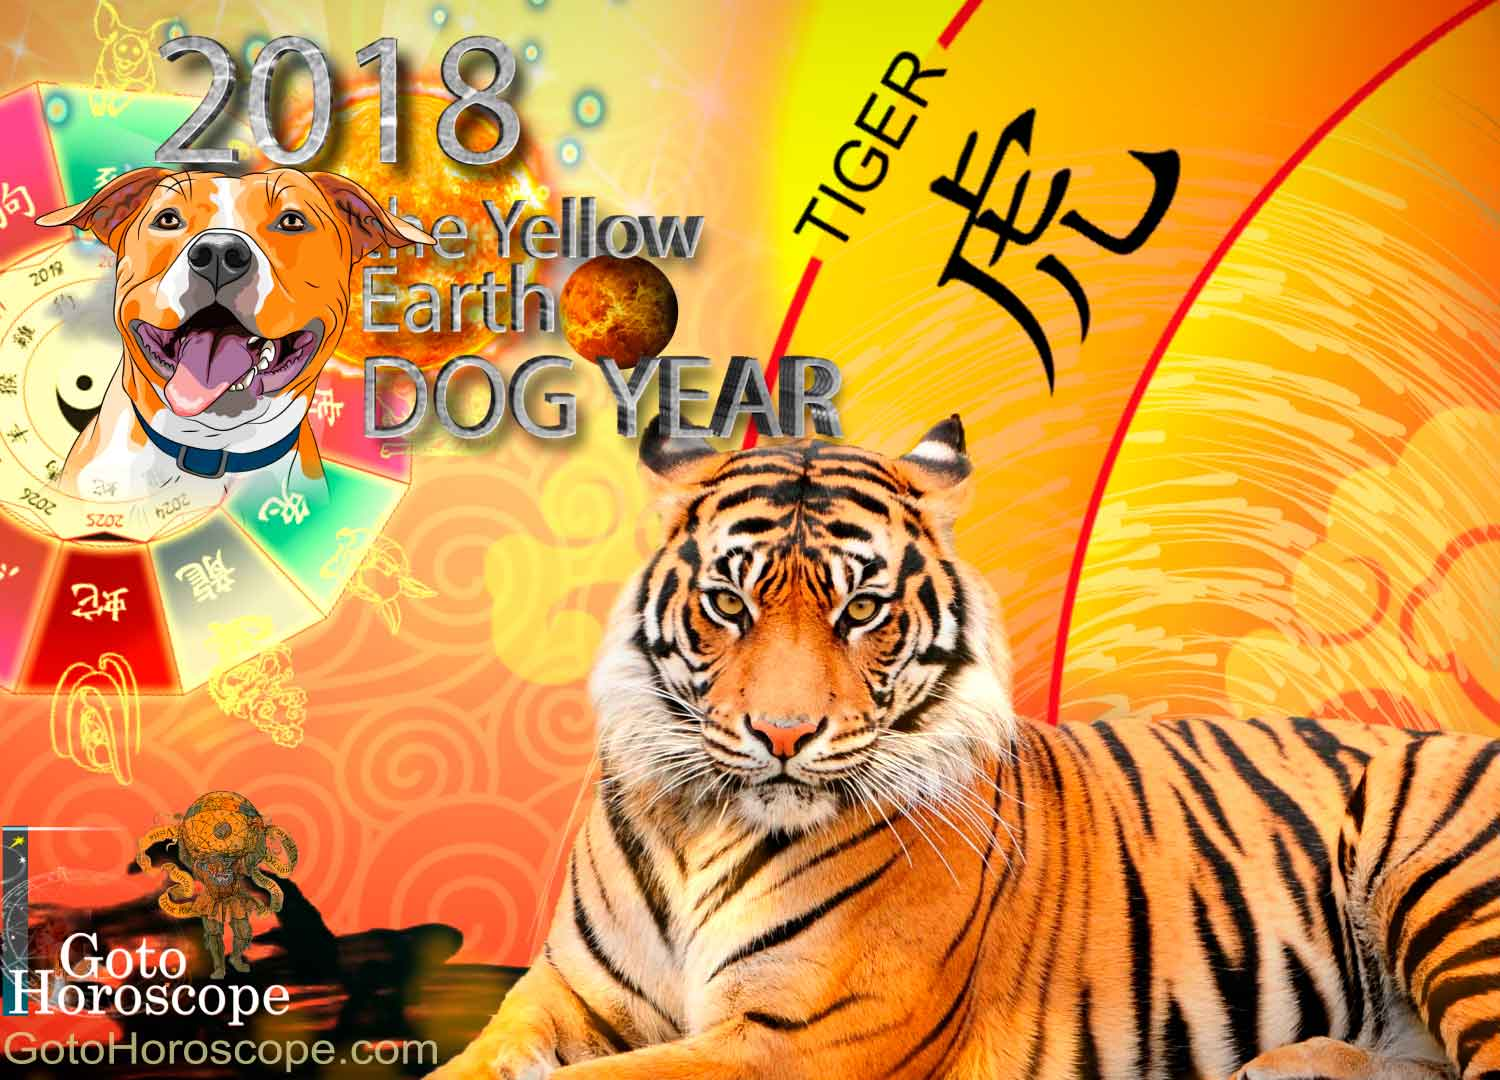 Tiger 2018 Horoscope for the Yellow Earth Dog Year